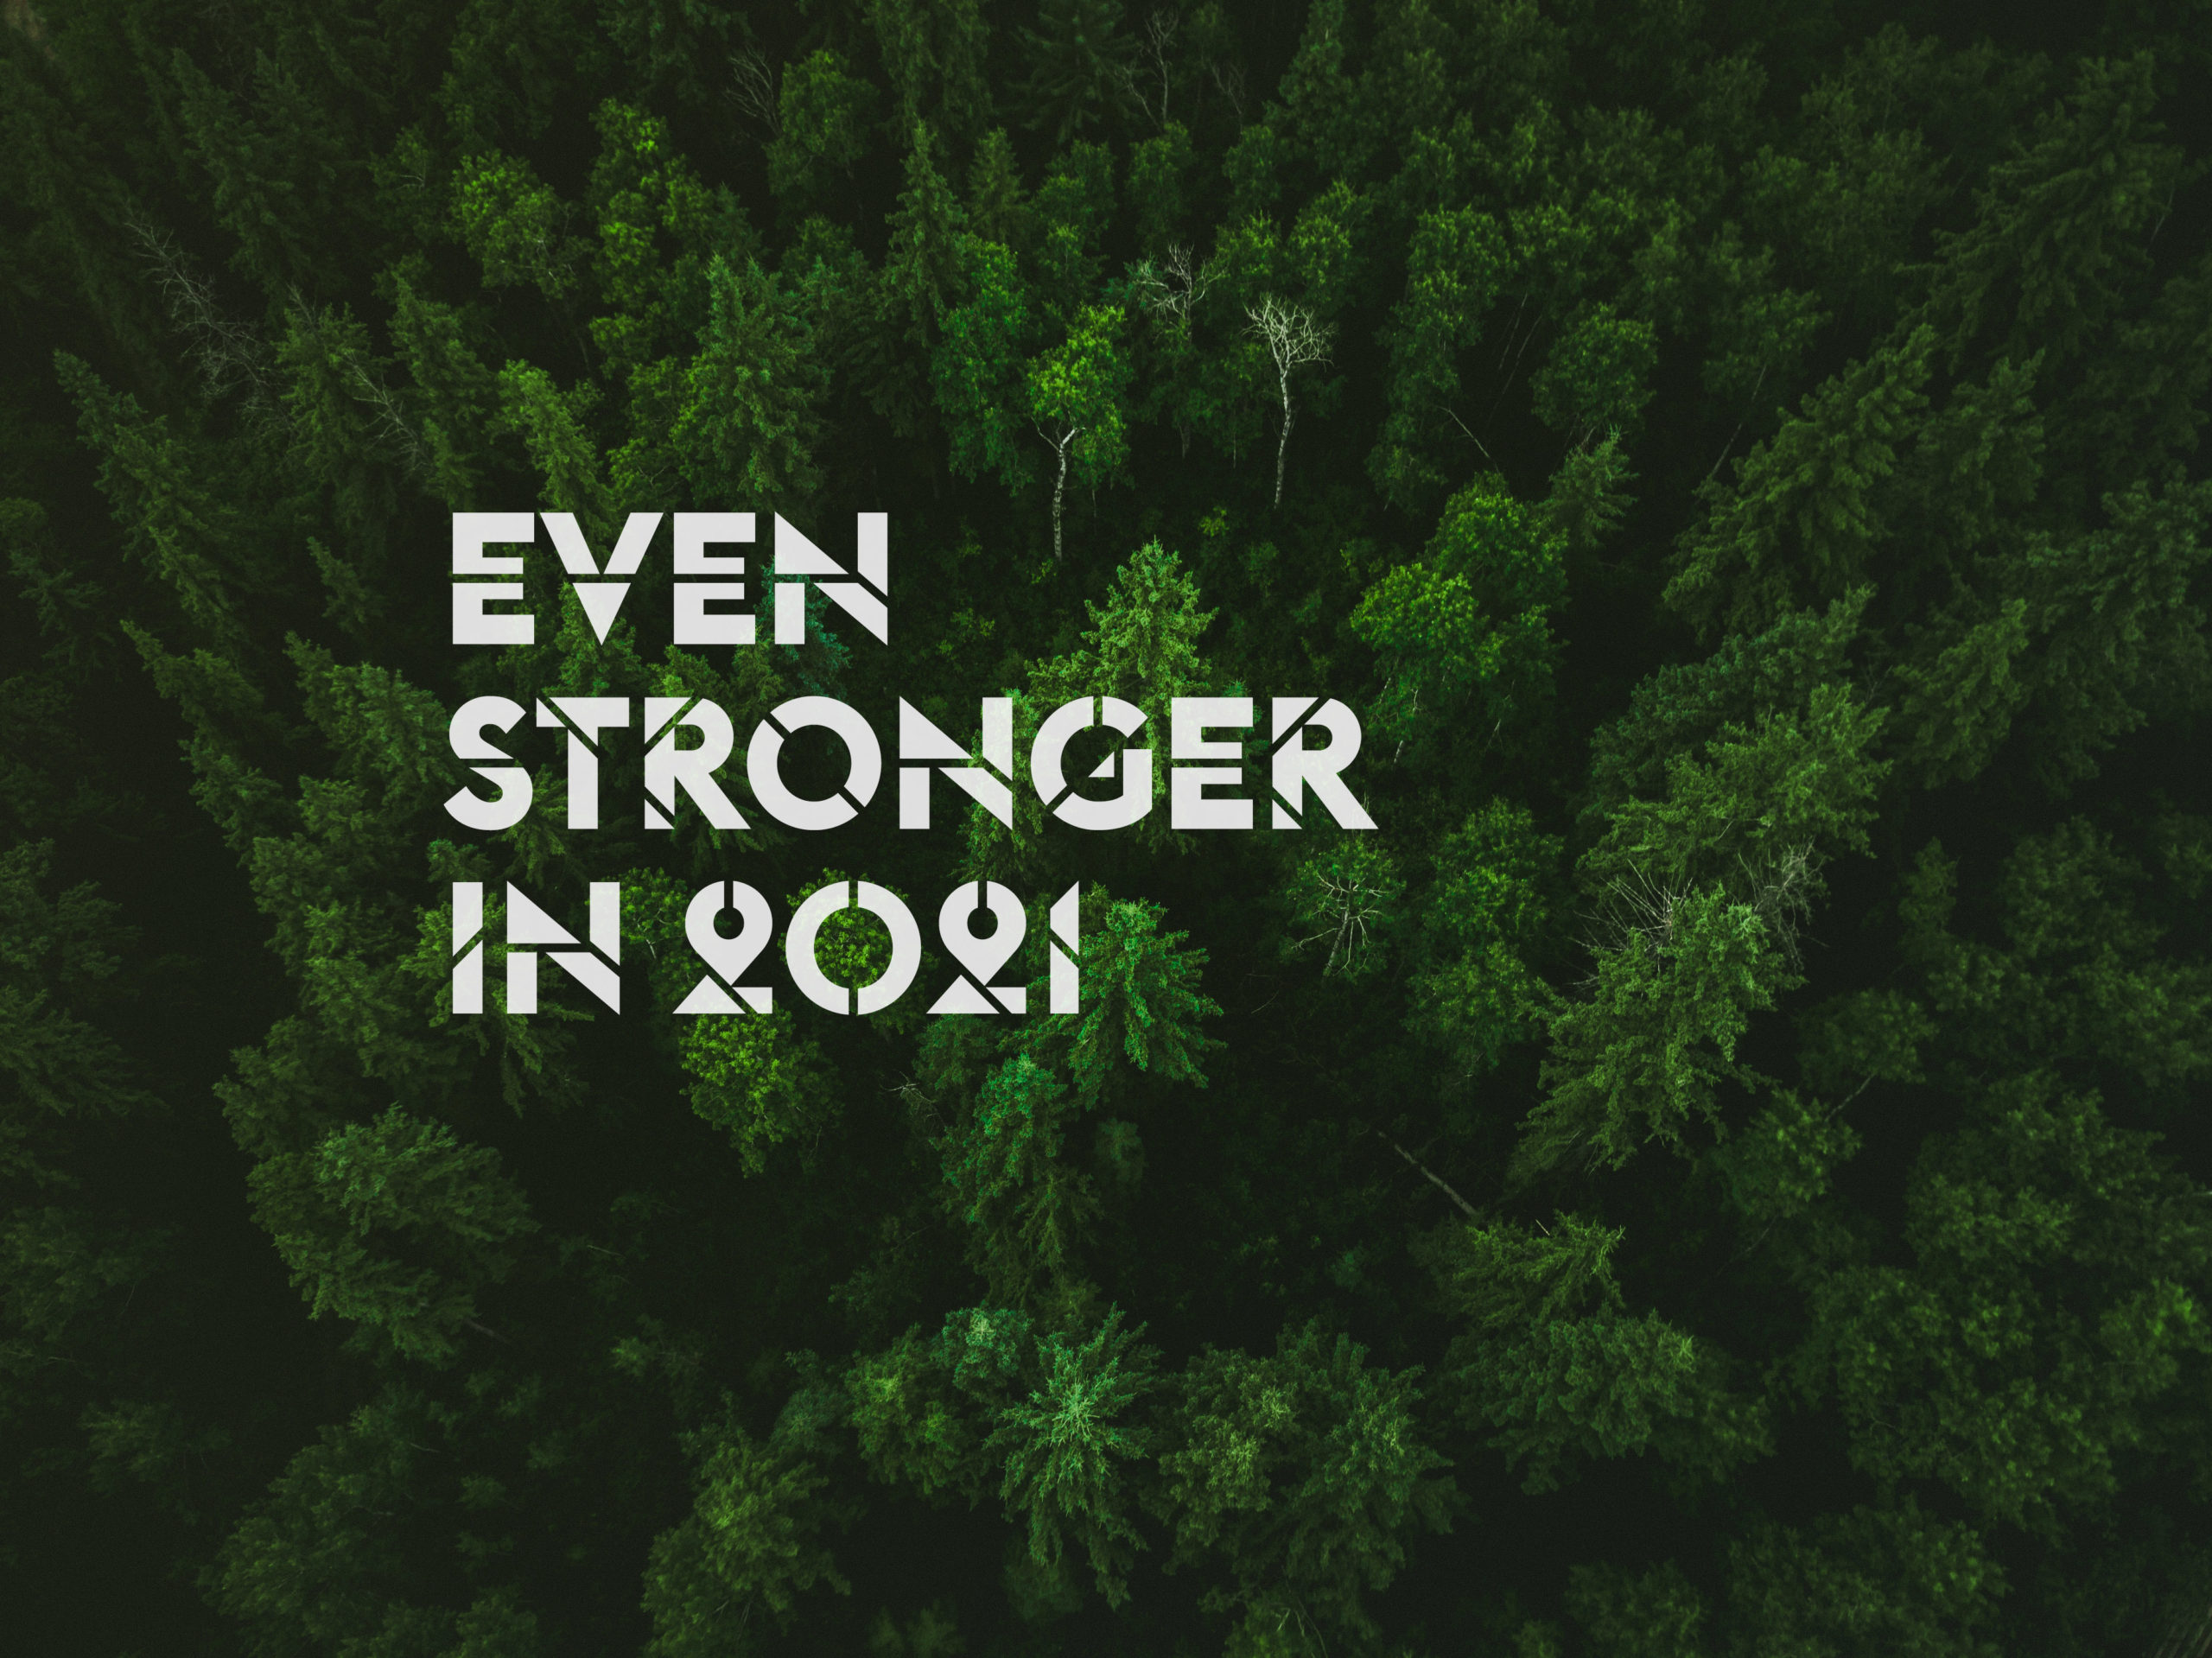 EVEN_STRONGER_IN_2021